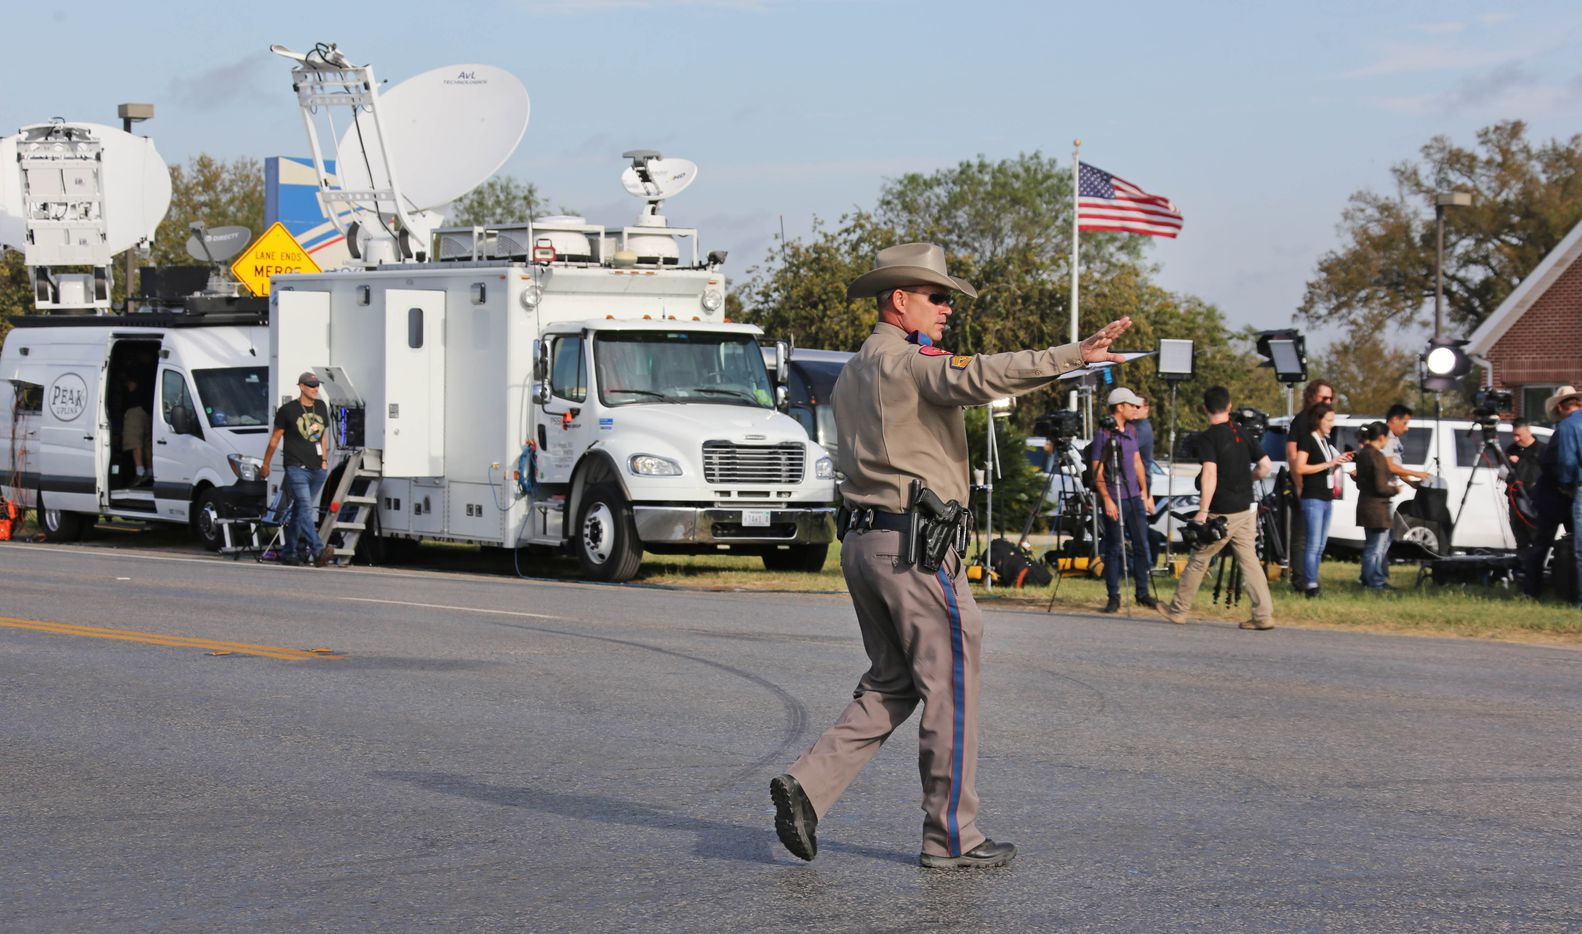 A state trooper directs traffic at the intersection near the First Baptist Church.